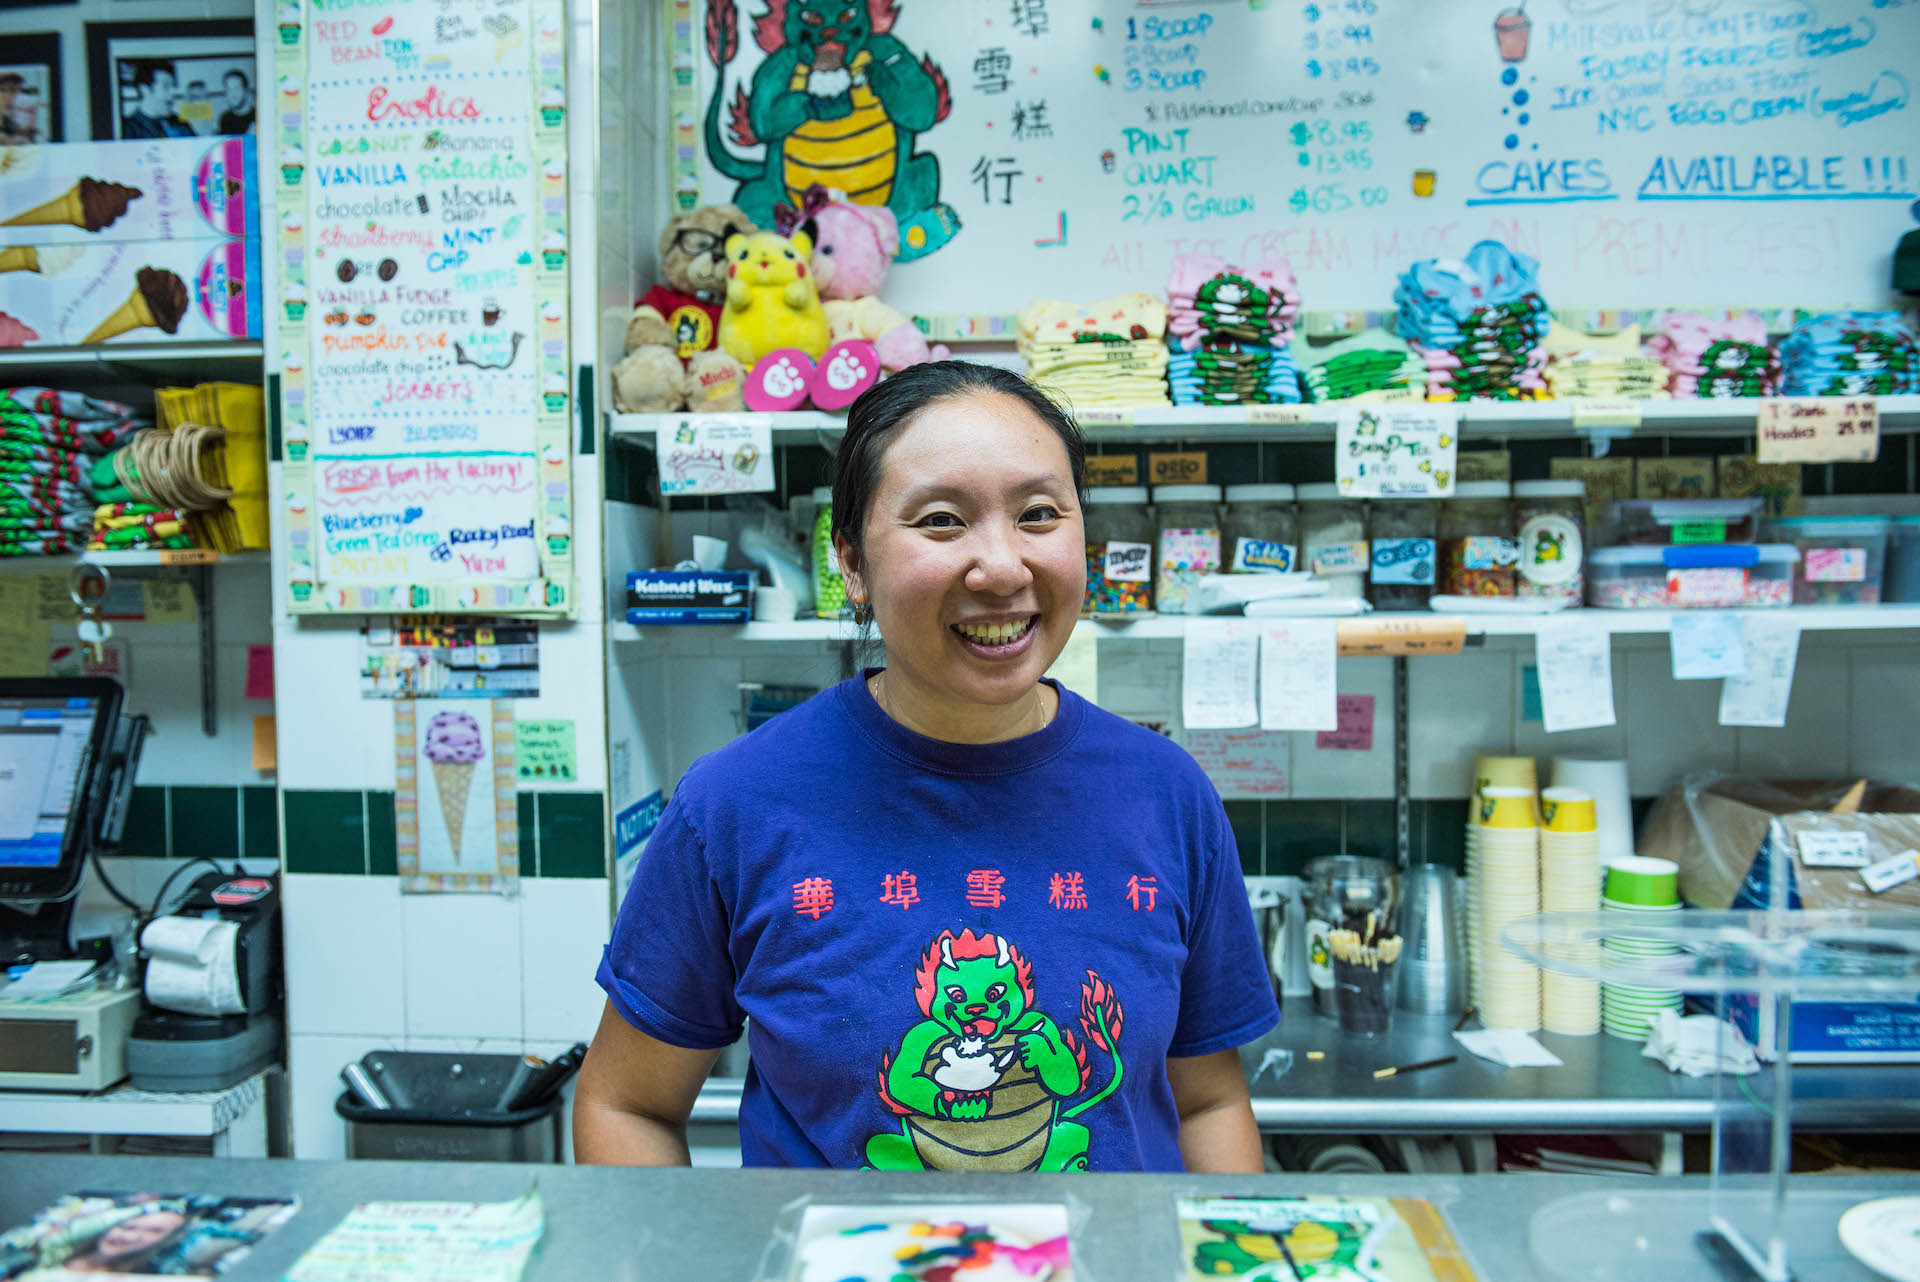 Christina Seid, the current owner of Chinatown Ice Cream Factory, started working at the store as a kid with her father.